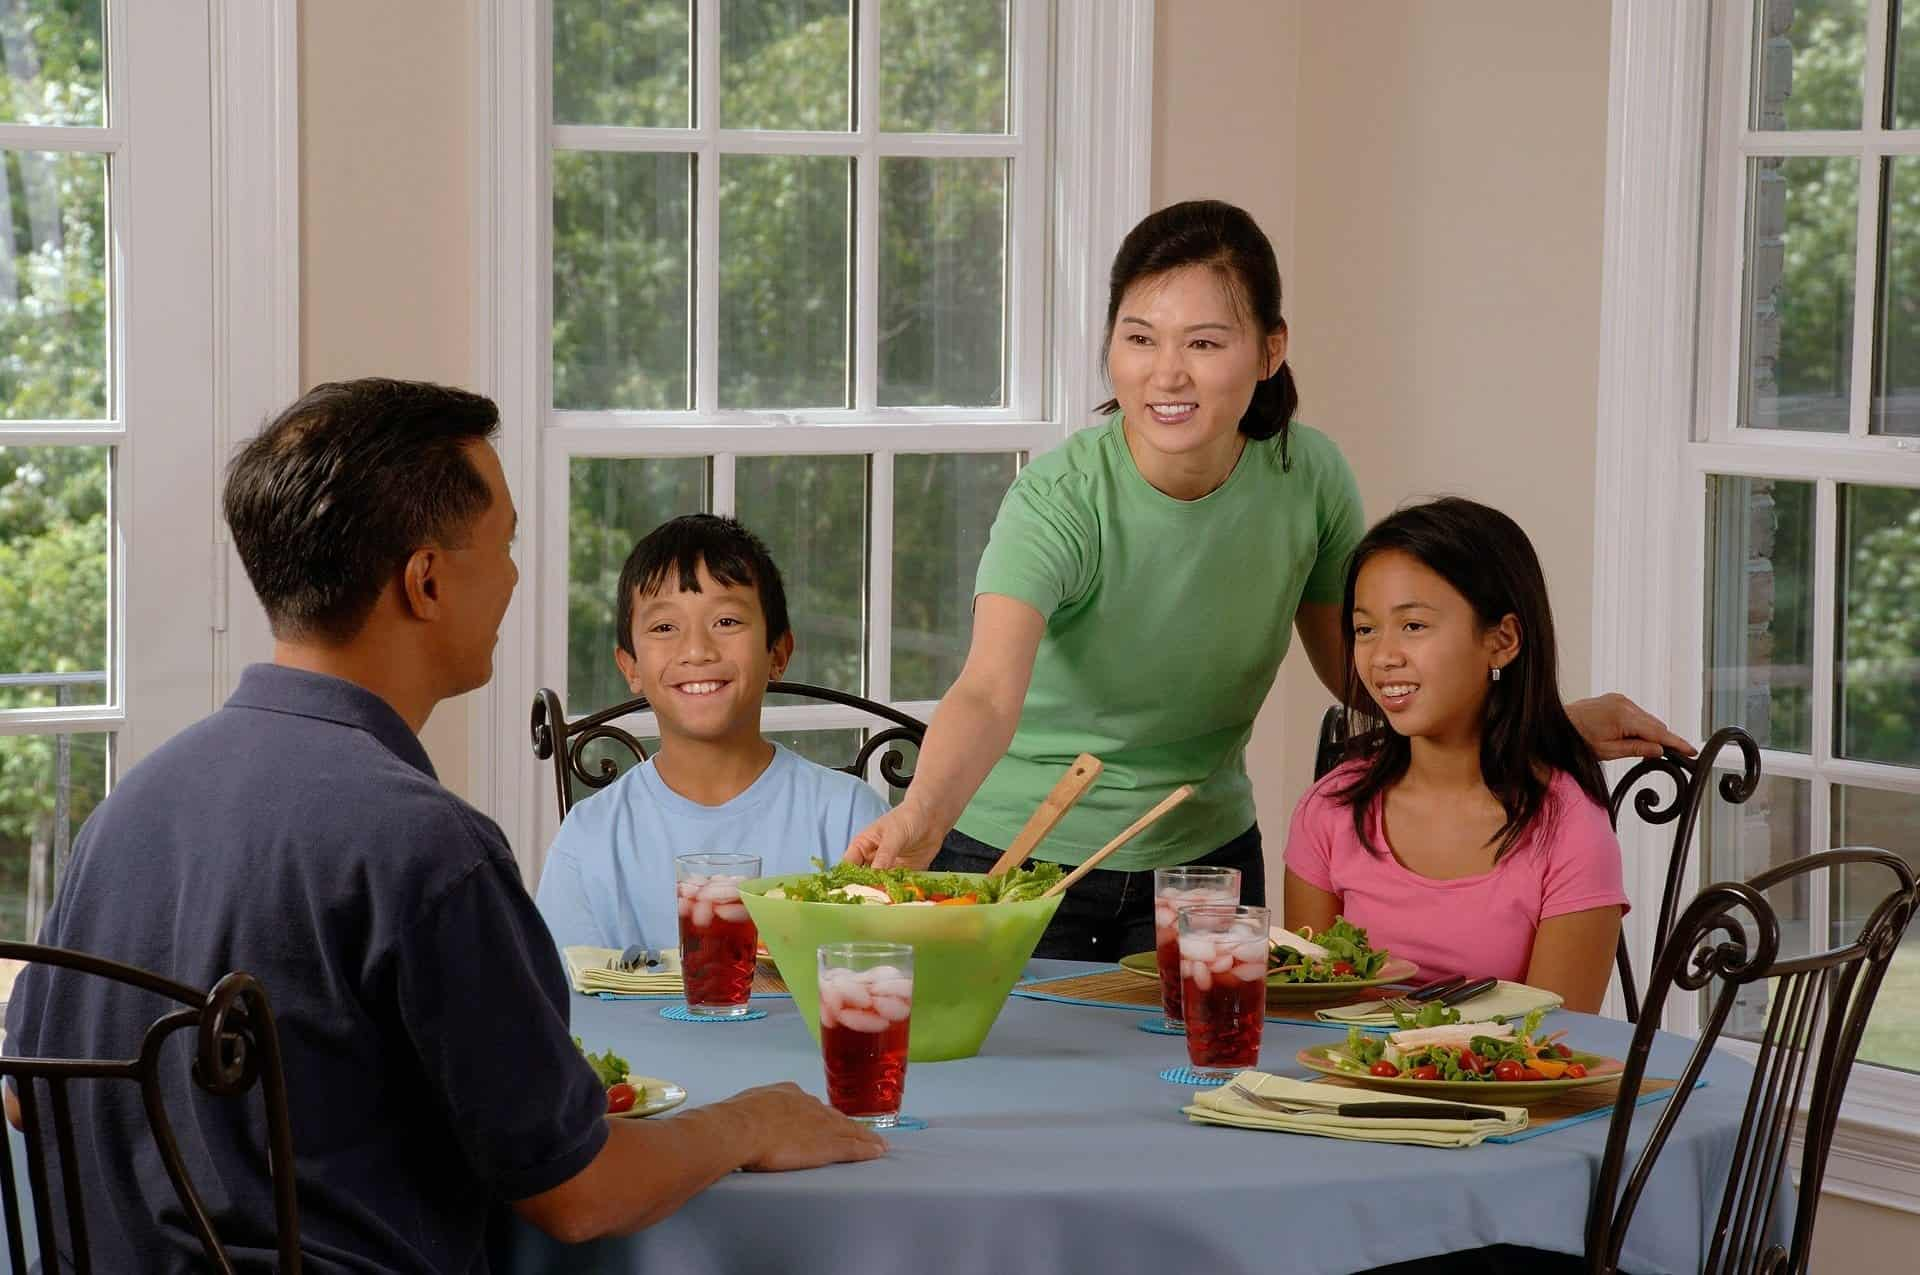 Family eating at a table together